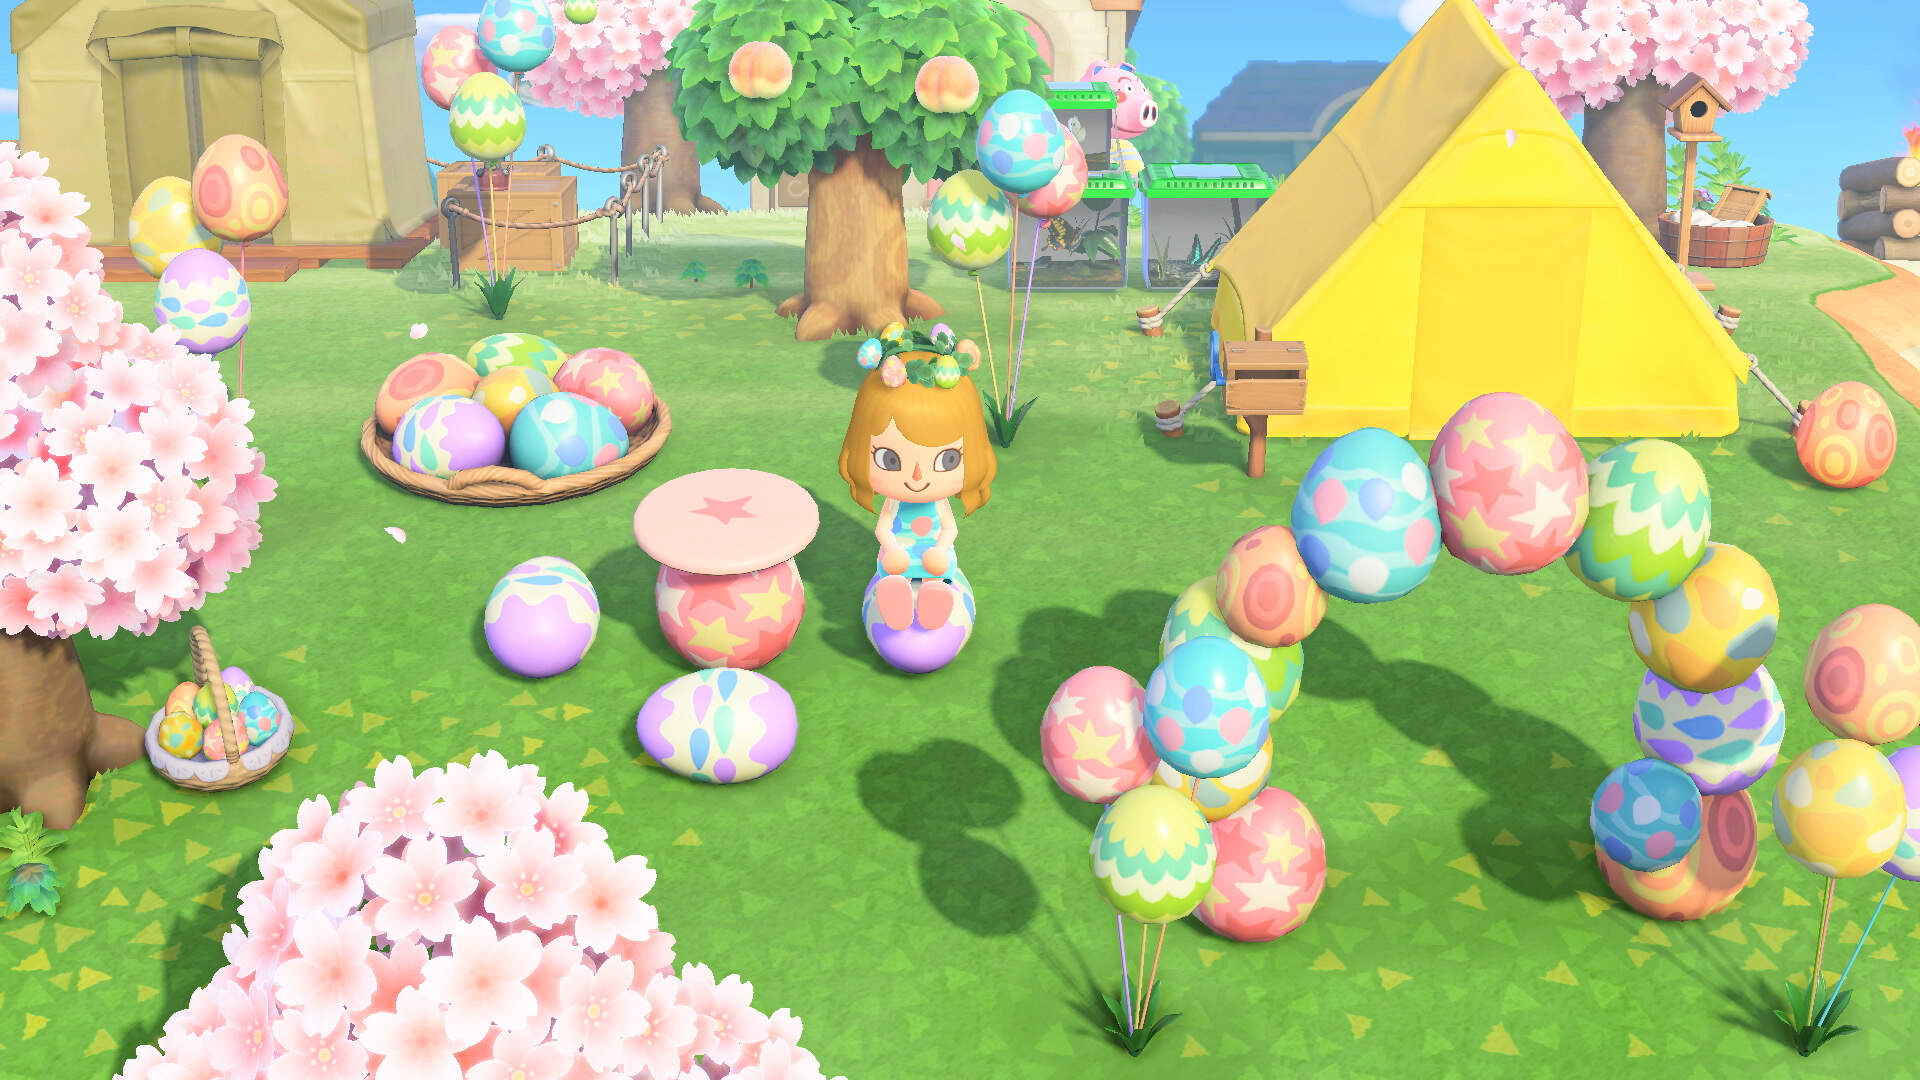 Animal Crossing: New Horizons Players Can Skip Ahead to Cherry Blossoms After the New Patch